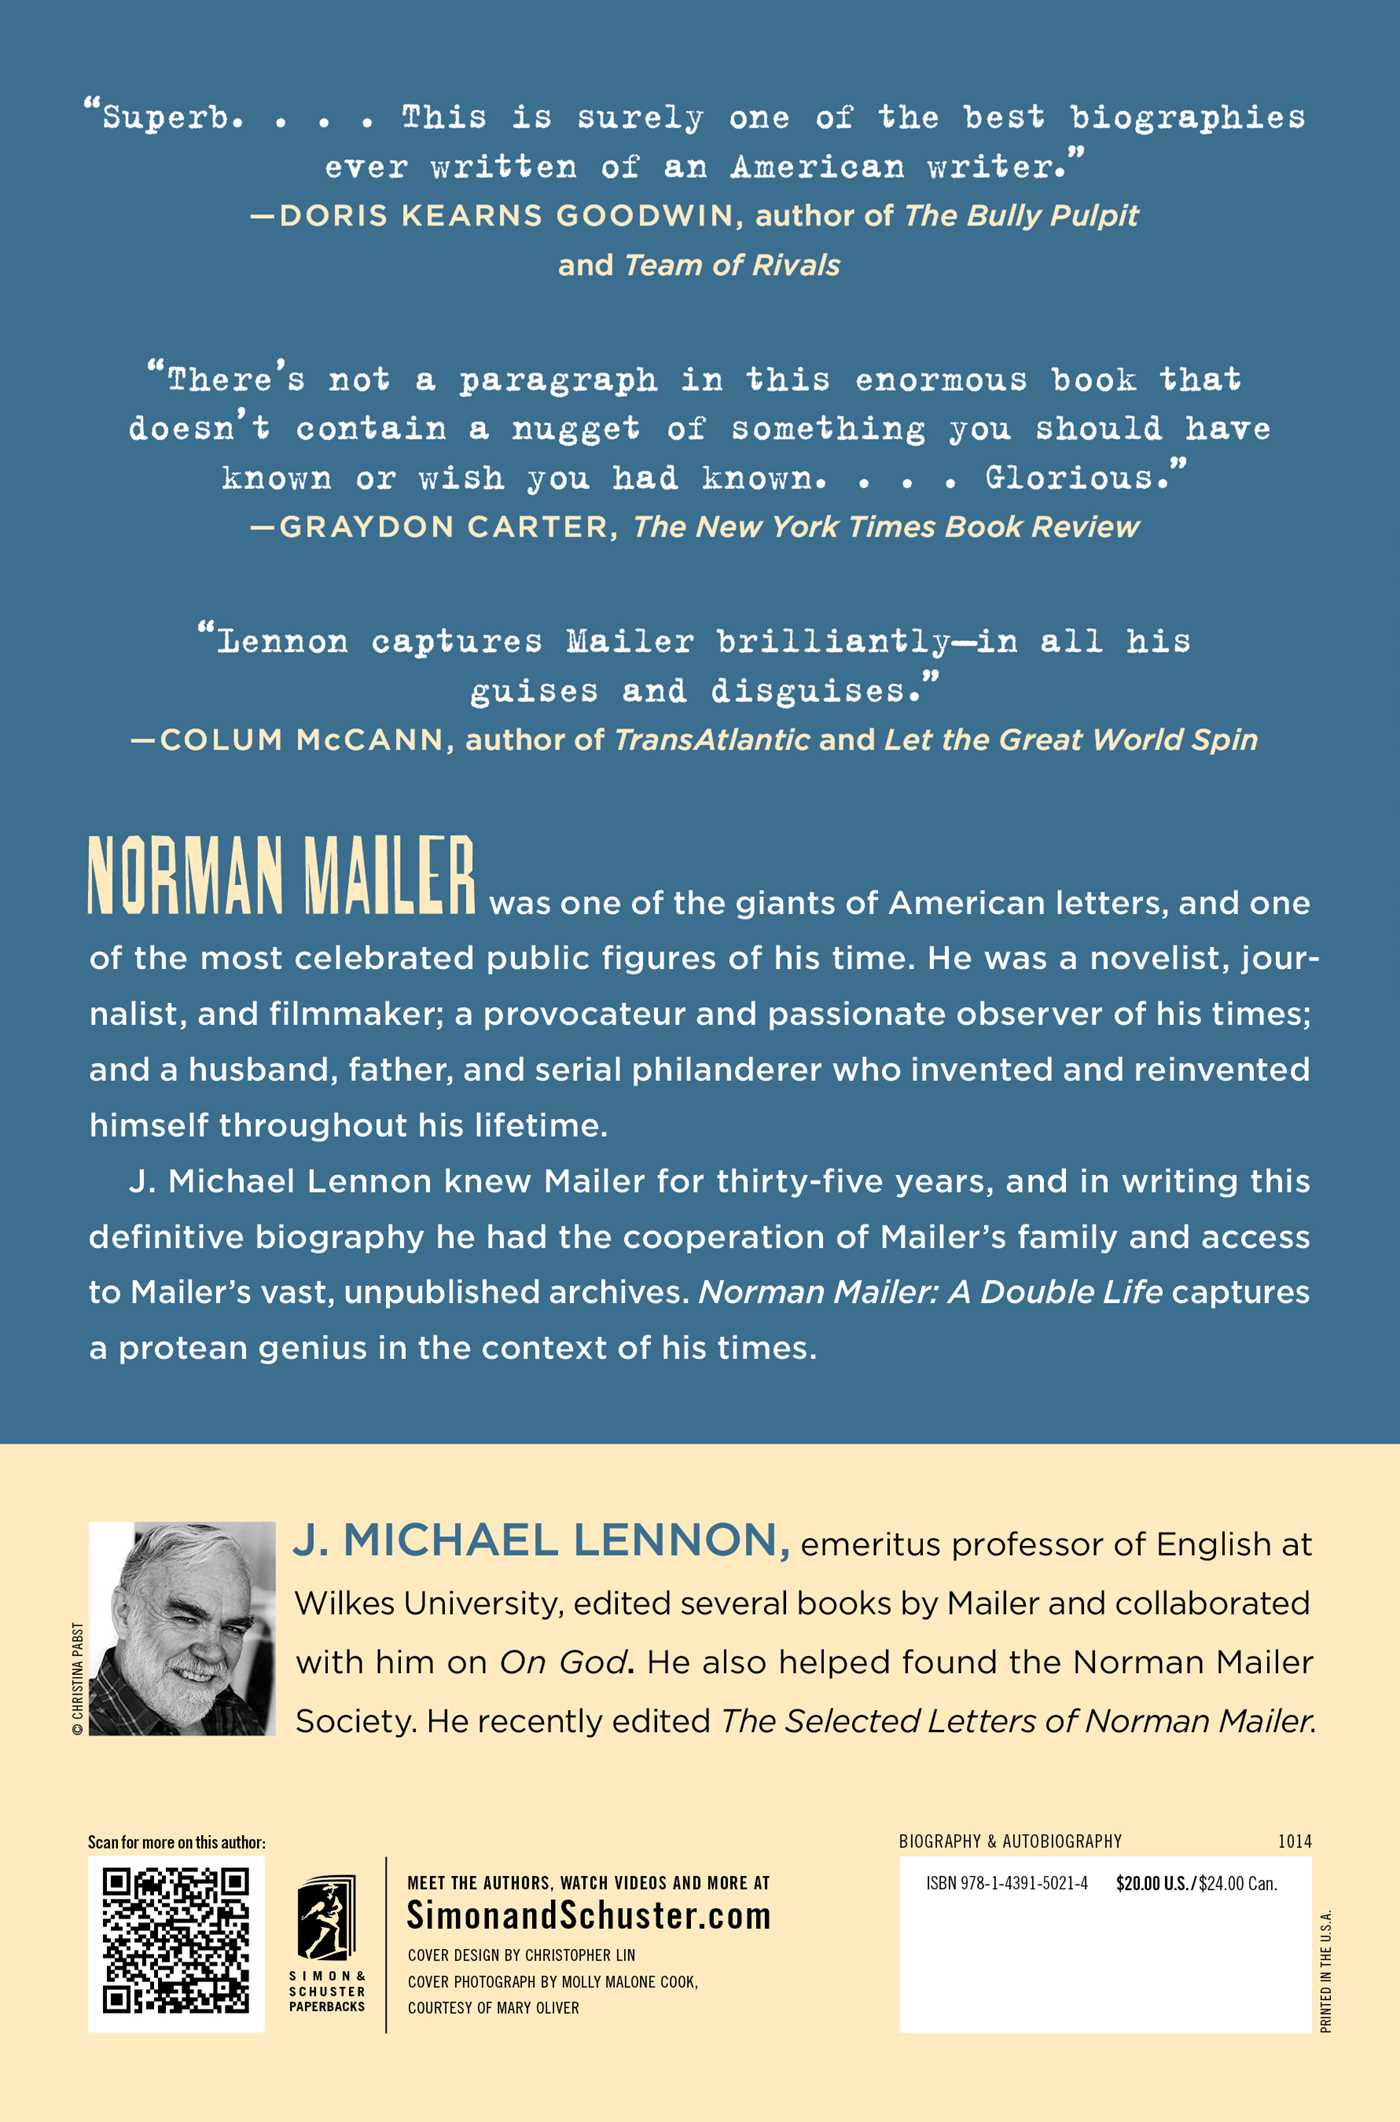 Norman mailer a double life 9781439150214 hr back